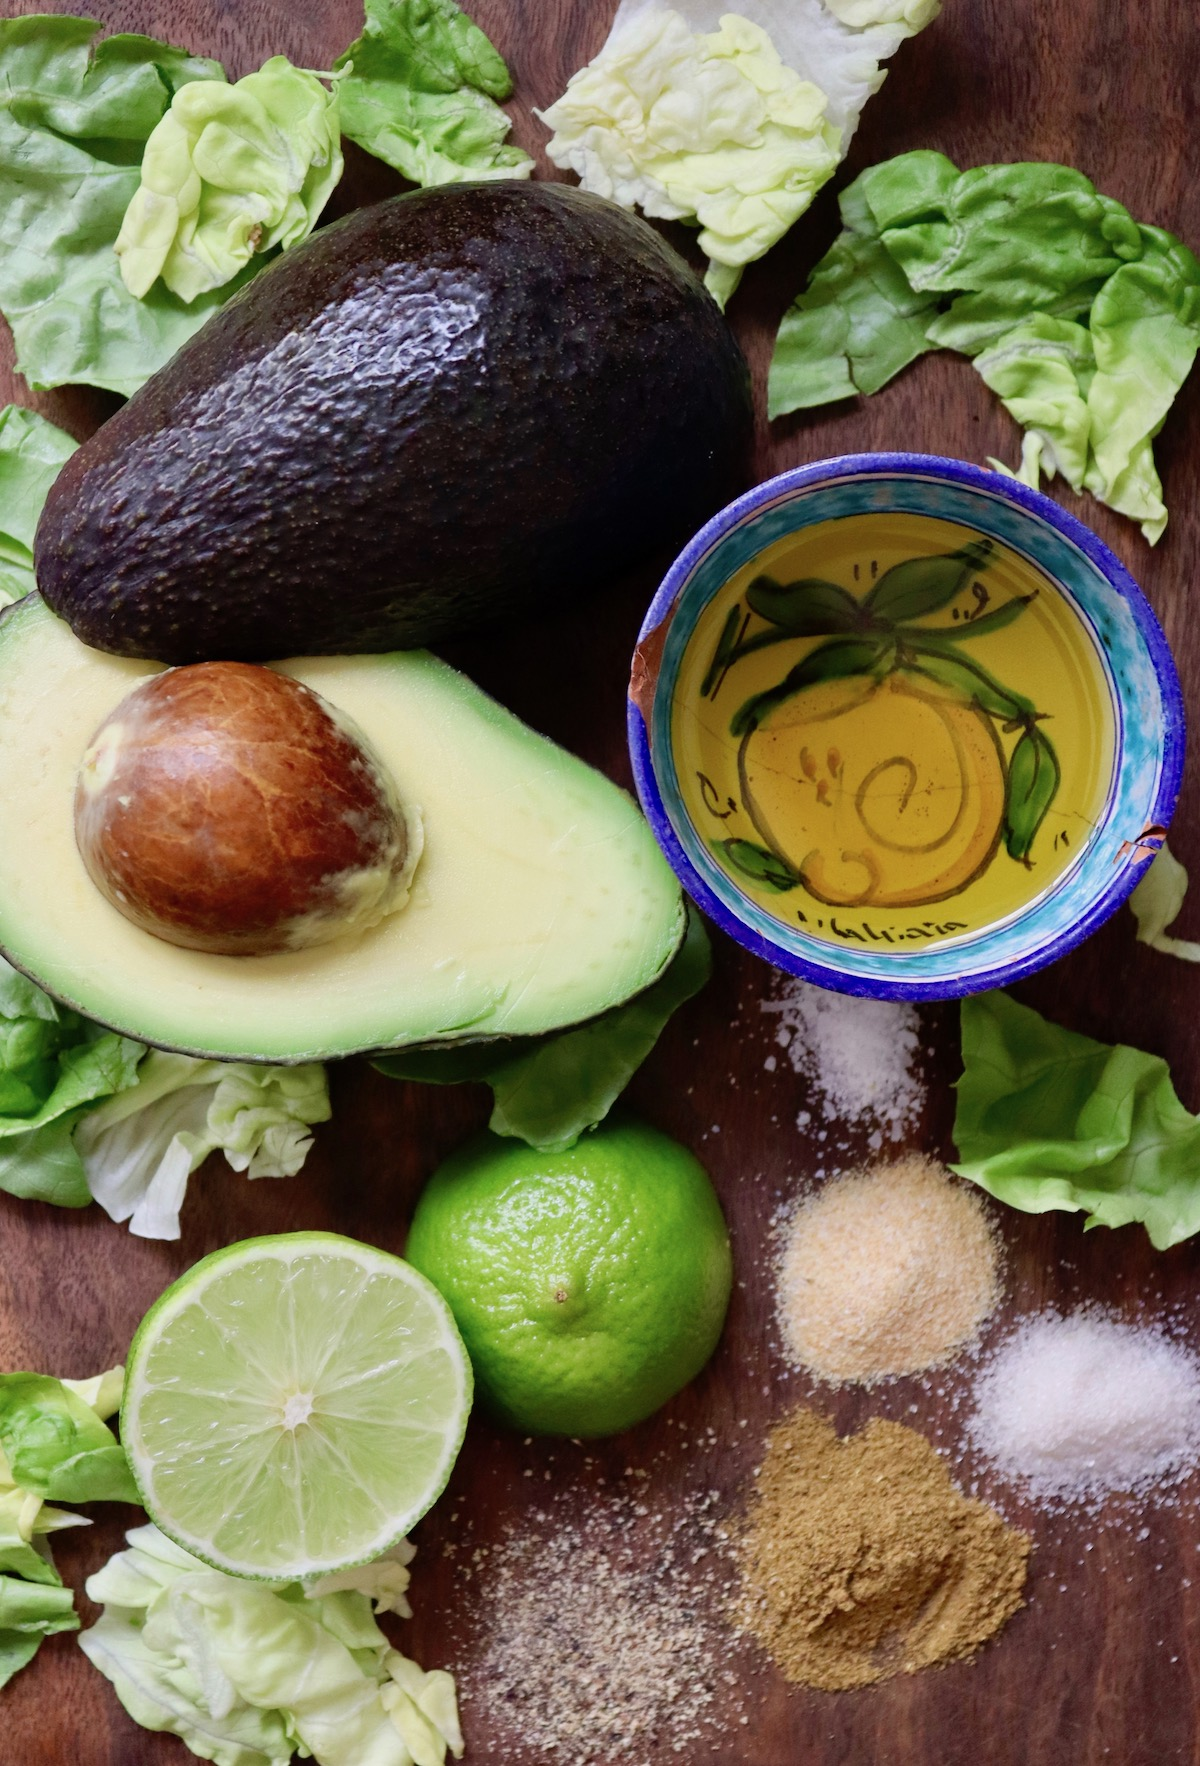 Creamy Lemon-Lime Avocado Dressing drizzled over lettuce greens on a red plate.